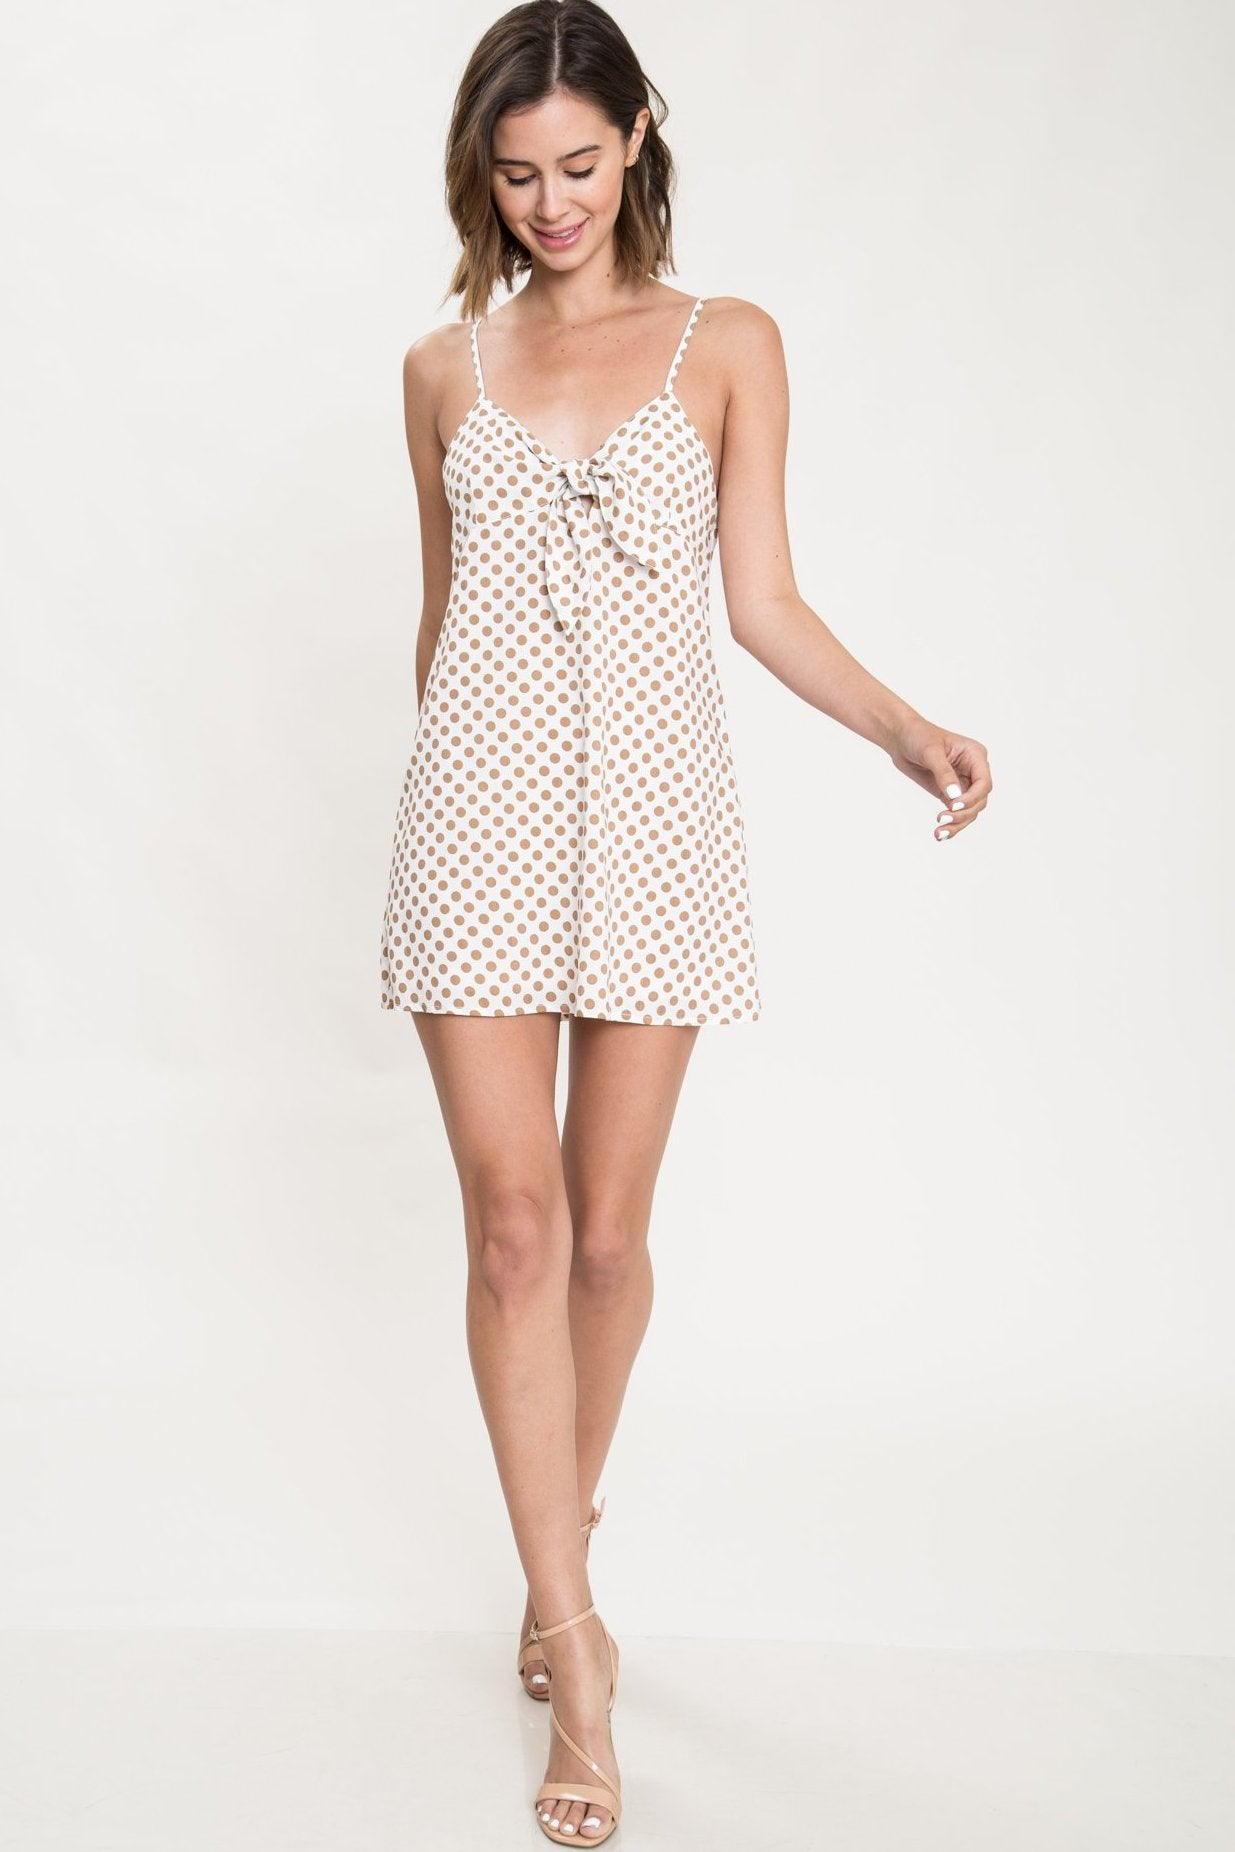 First Love Polka Dot Mini Dress - Geegeebae